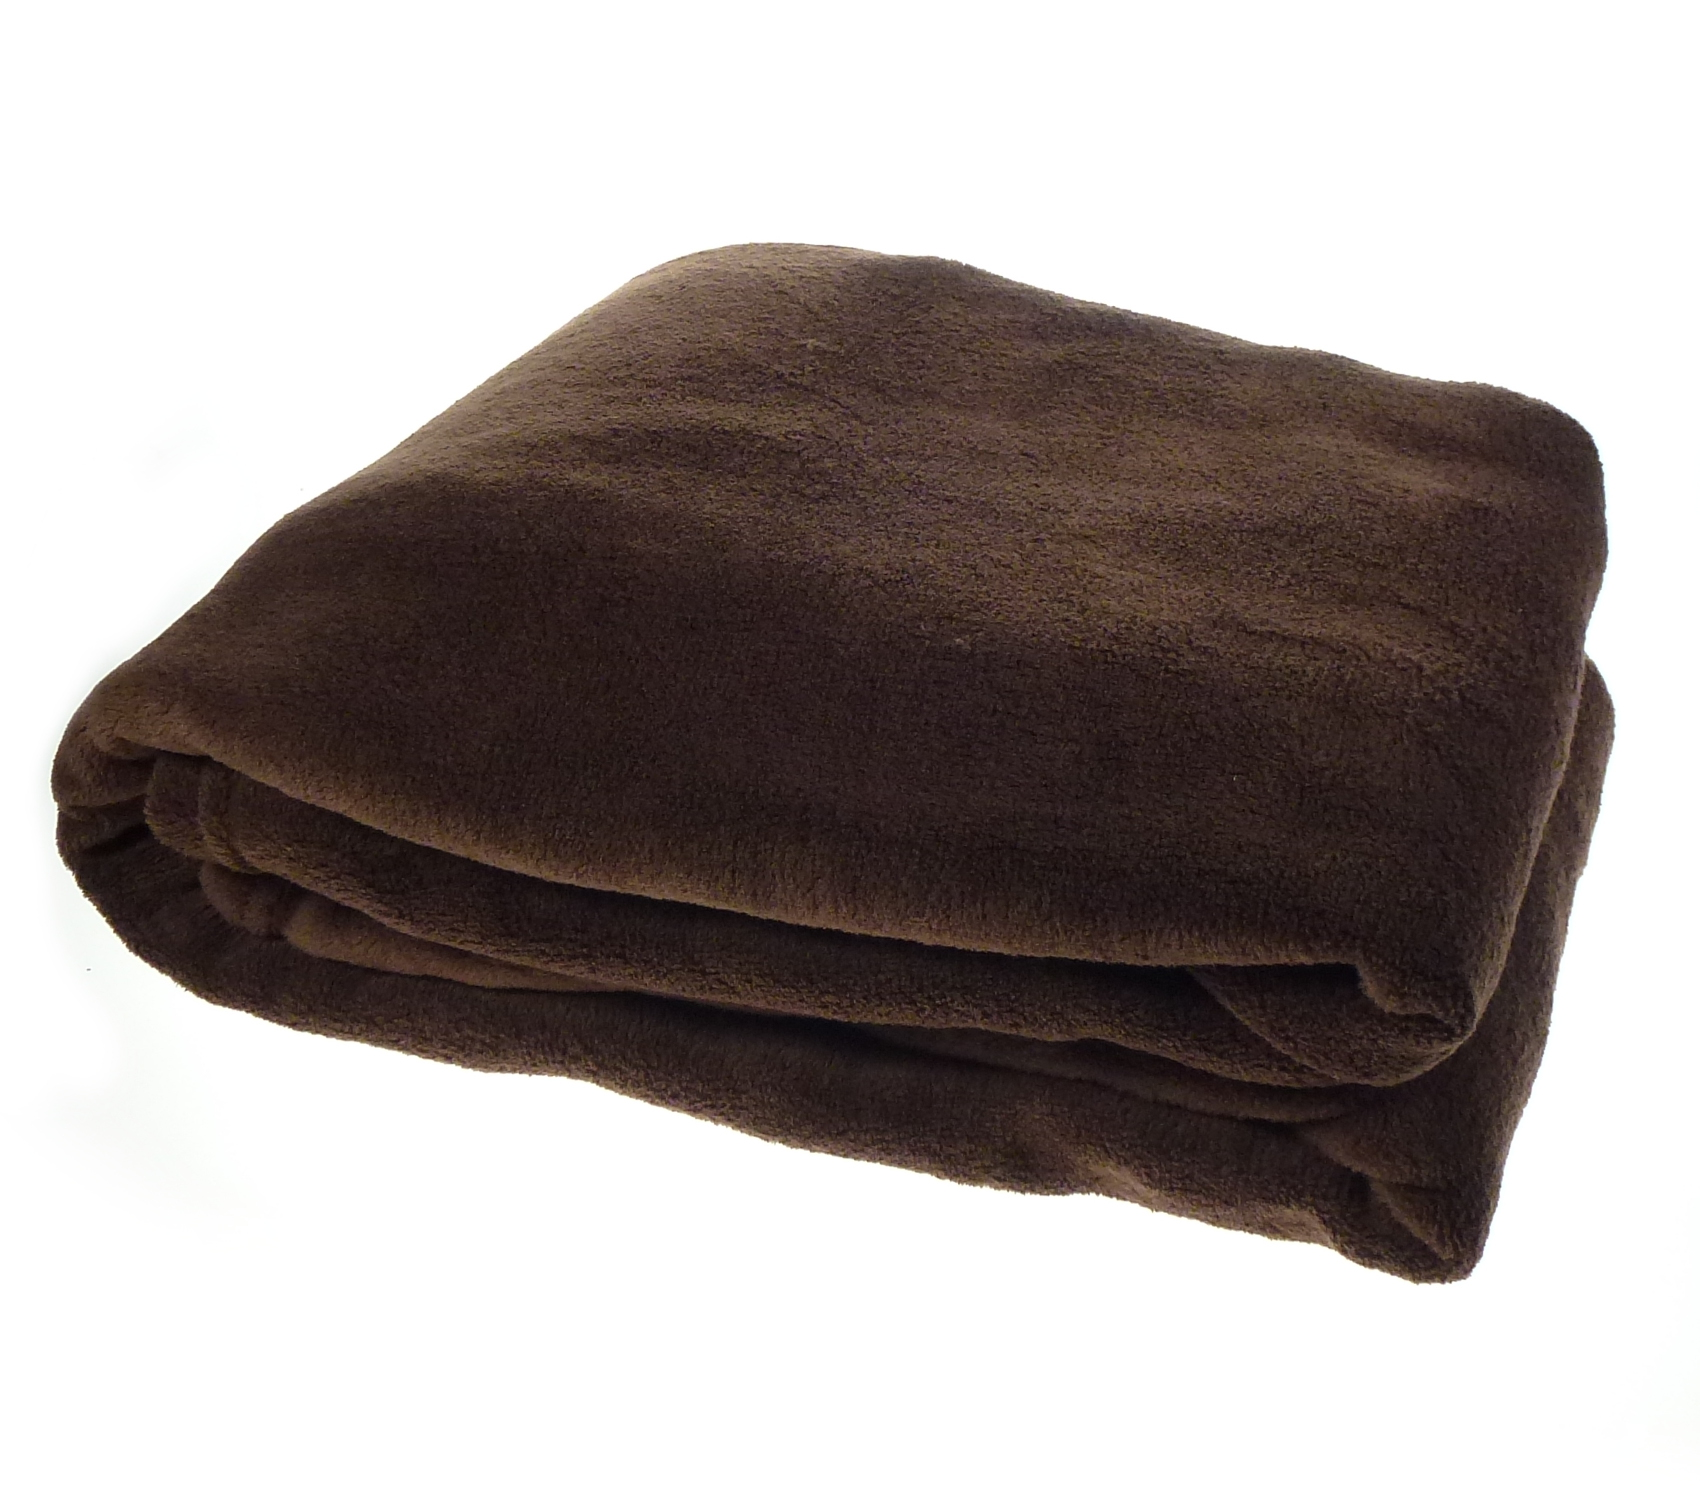 From mid-afternoon snooze sessions to all-night movie marathons, nothing quite makes the experience like a cozy blanket. Keep your relaxation routine covered with blankets, throws, and pillows from Berkshire Blanket.